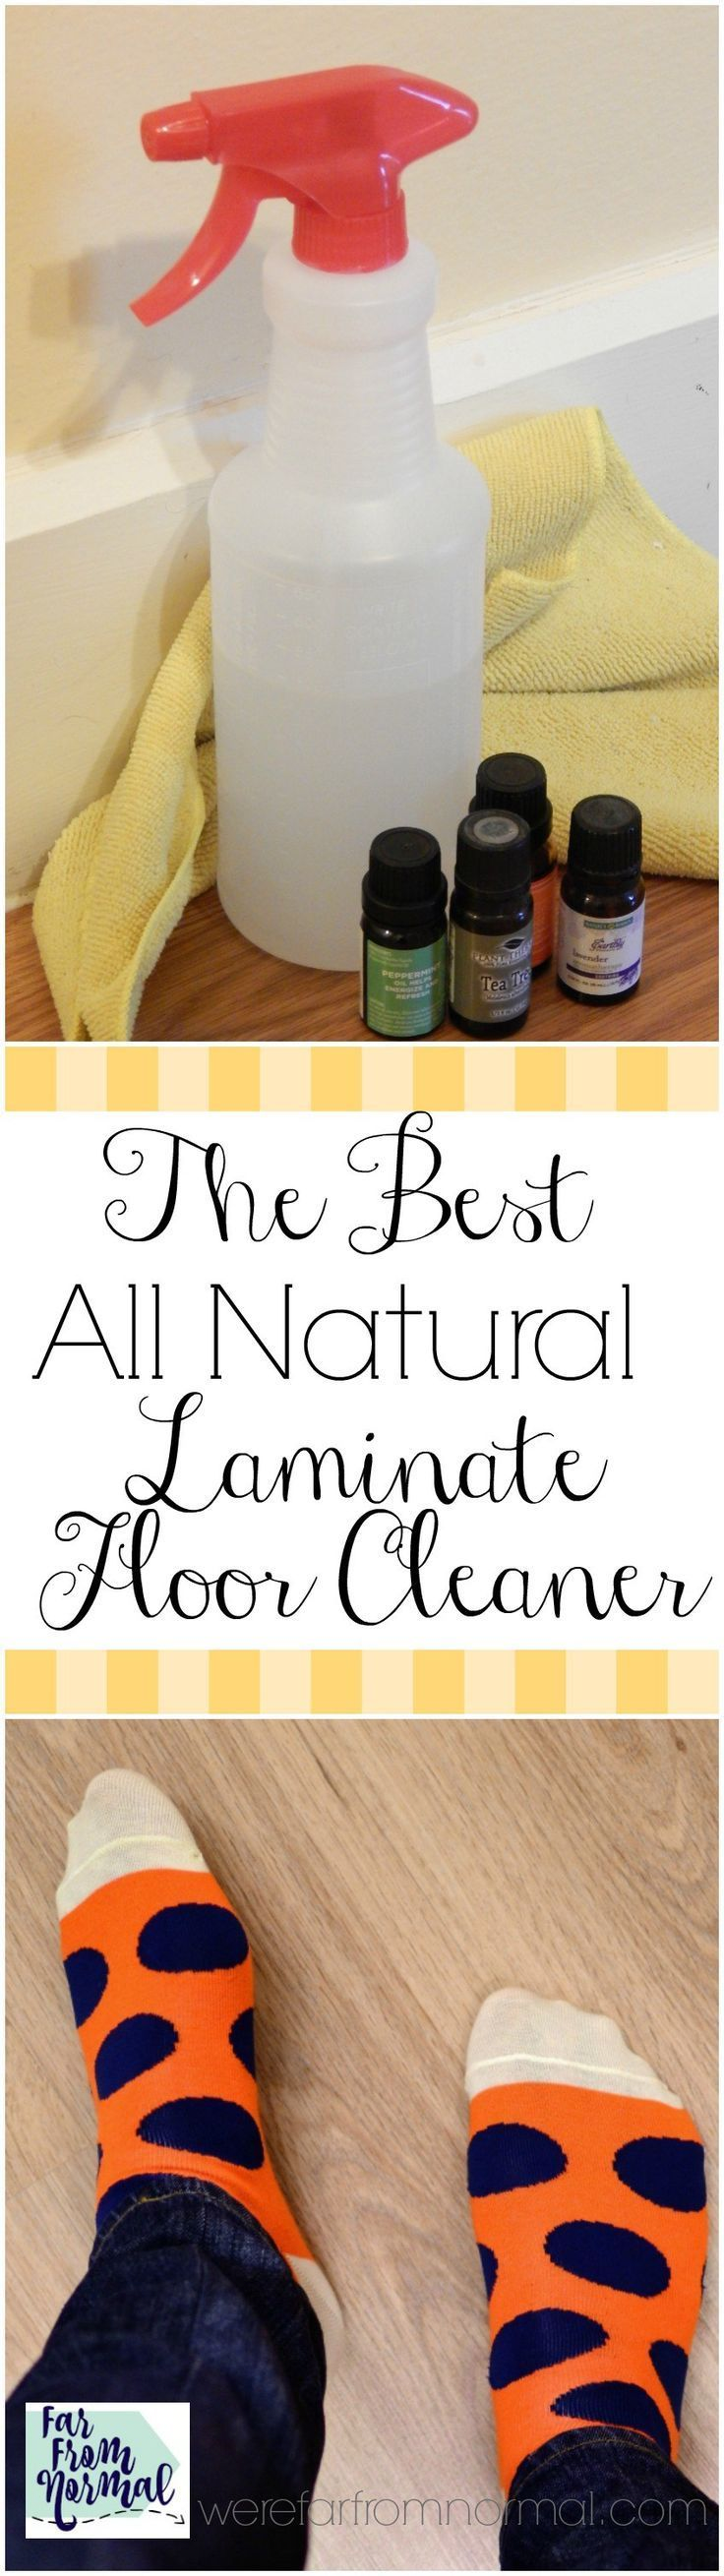 The Best All Natural Laminate Floor Cleaner